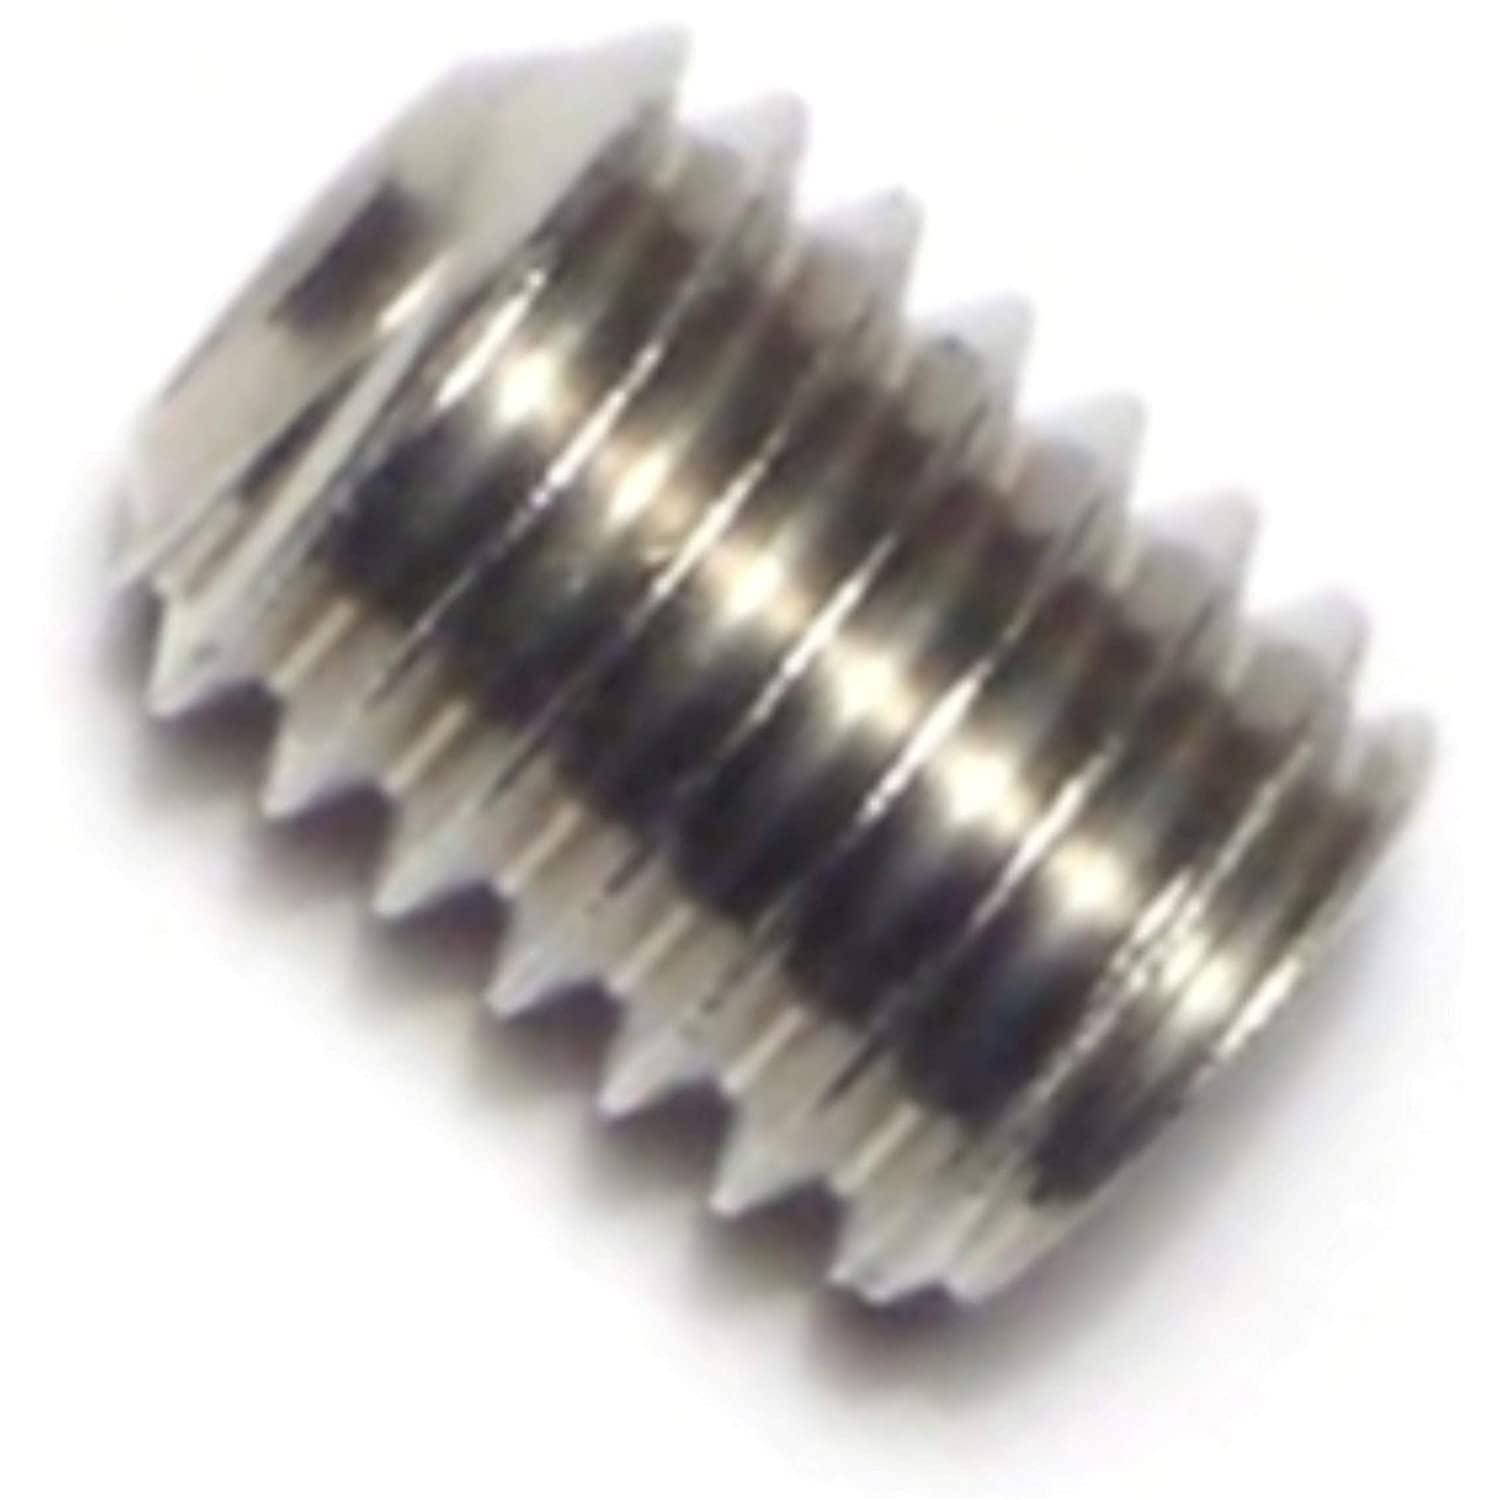 Grade 8 Fastcom Supply 7//16-20 Thread Size Pack of 50 Pack of 50 Small Parts FSC716FHN8Y High-Strength Steel Hex Nut 7//16-20 Thread Size